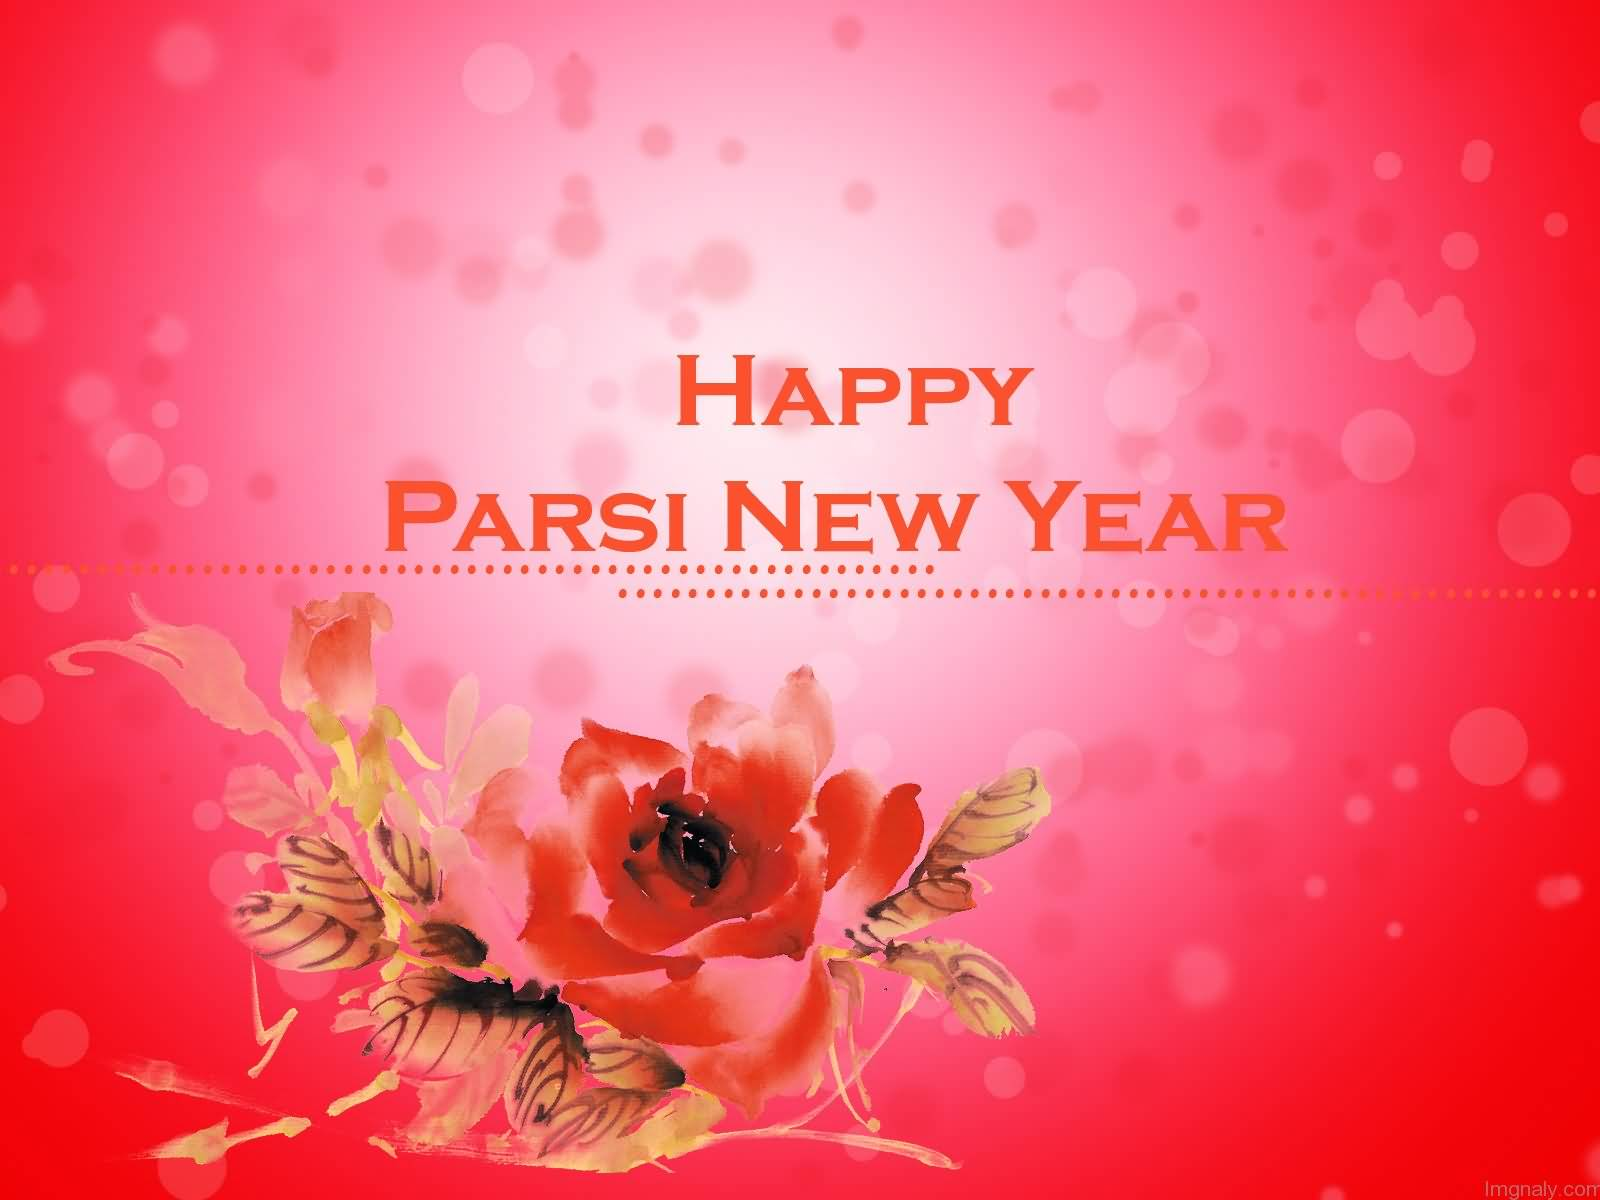 Happy Parsi New Year Flower Greeting Card